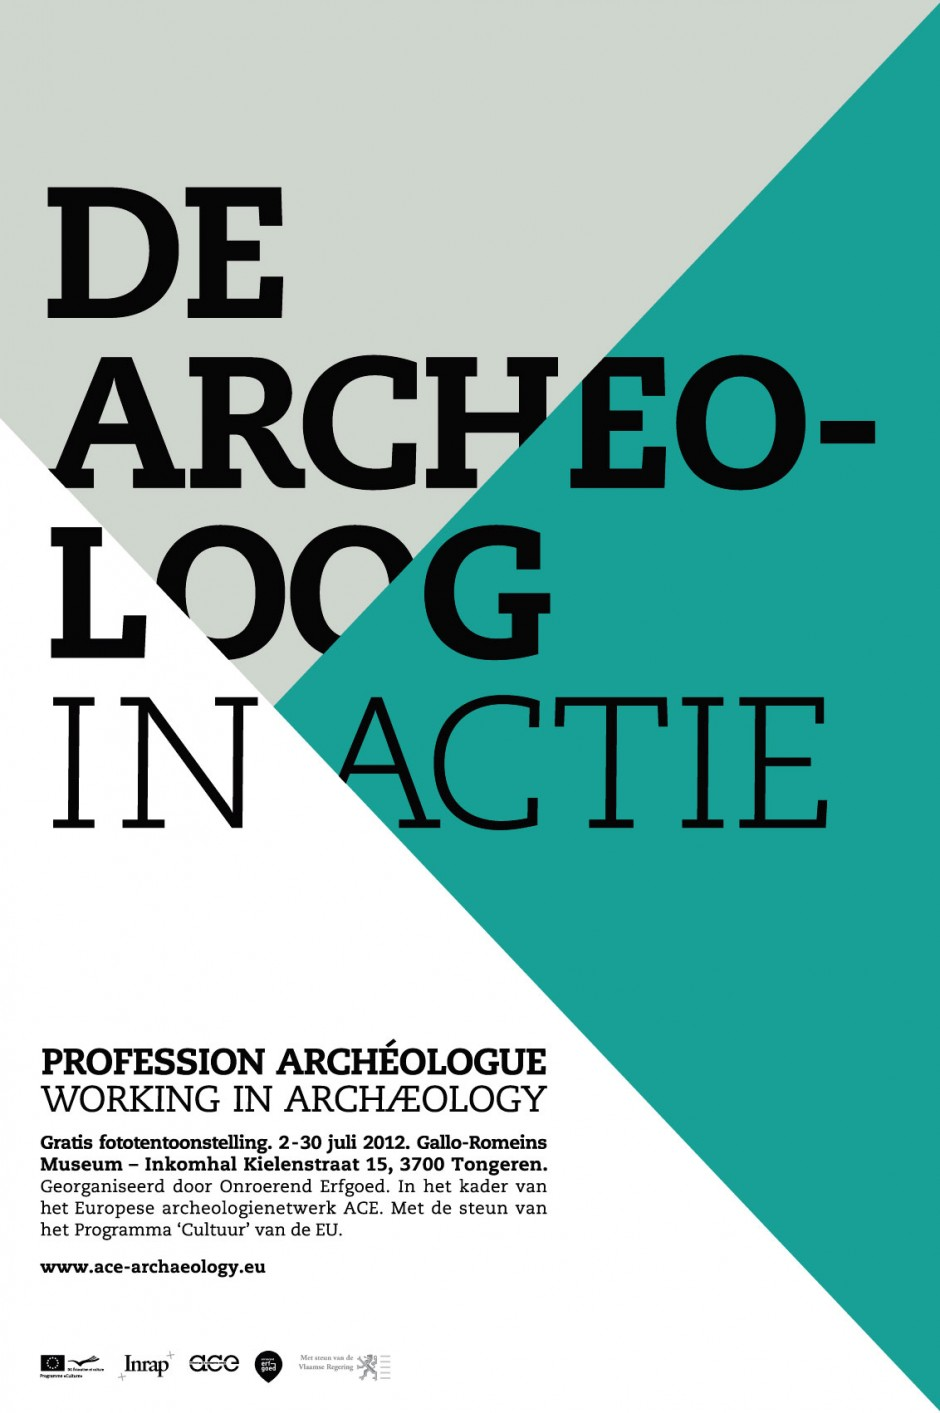 Archéologue – dutch exhibition poster